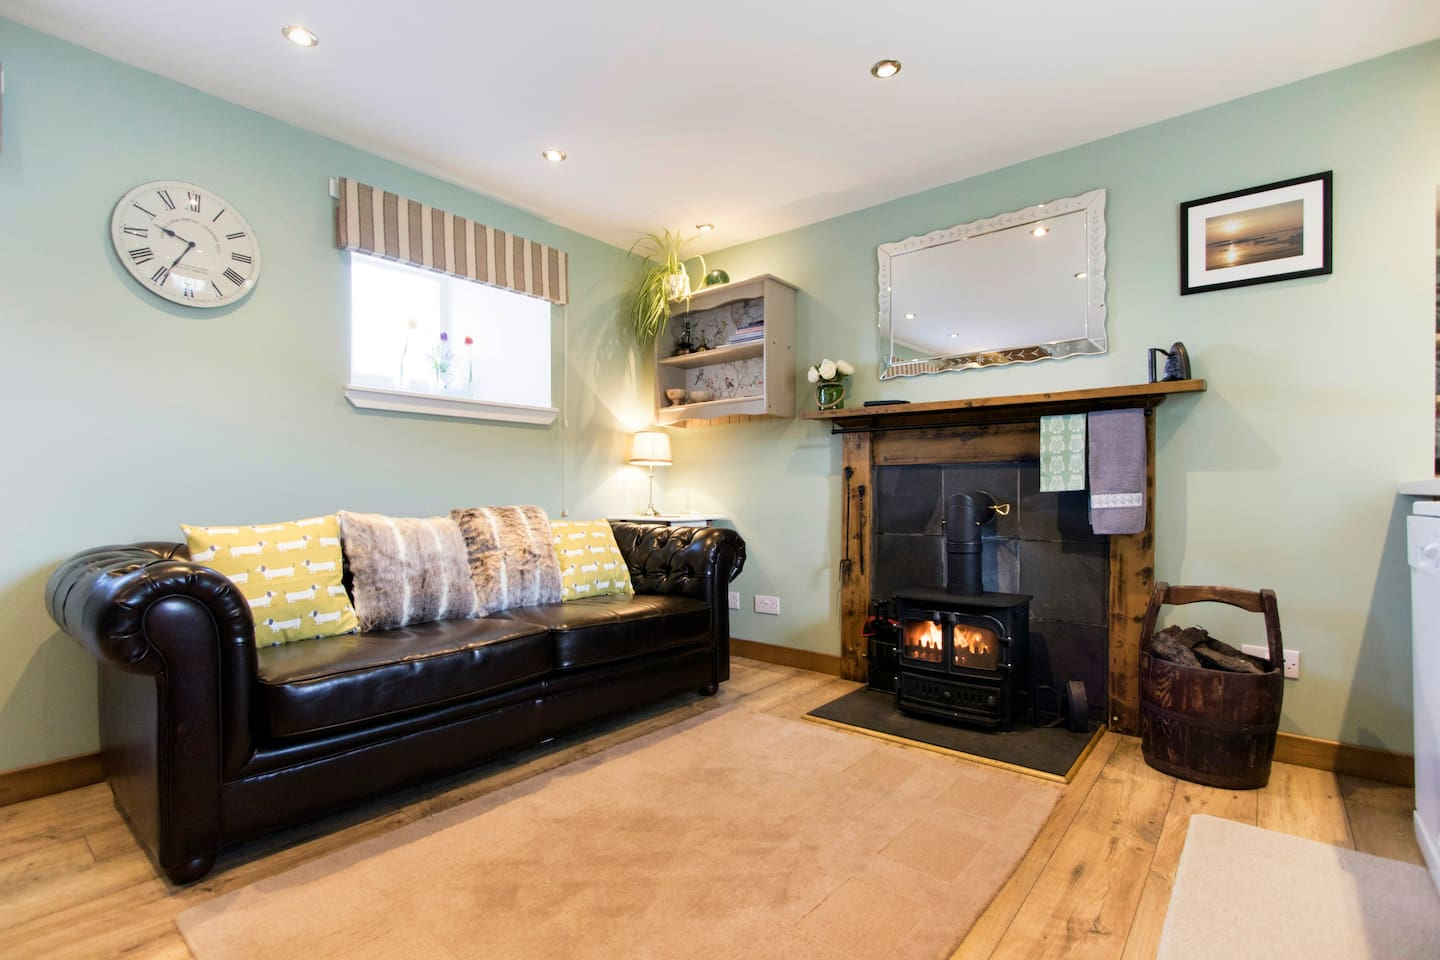 A warm welcome awaits you in the cottage